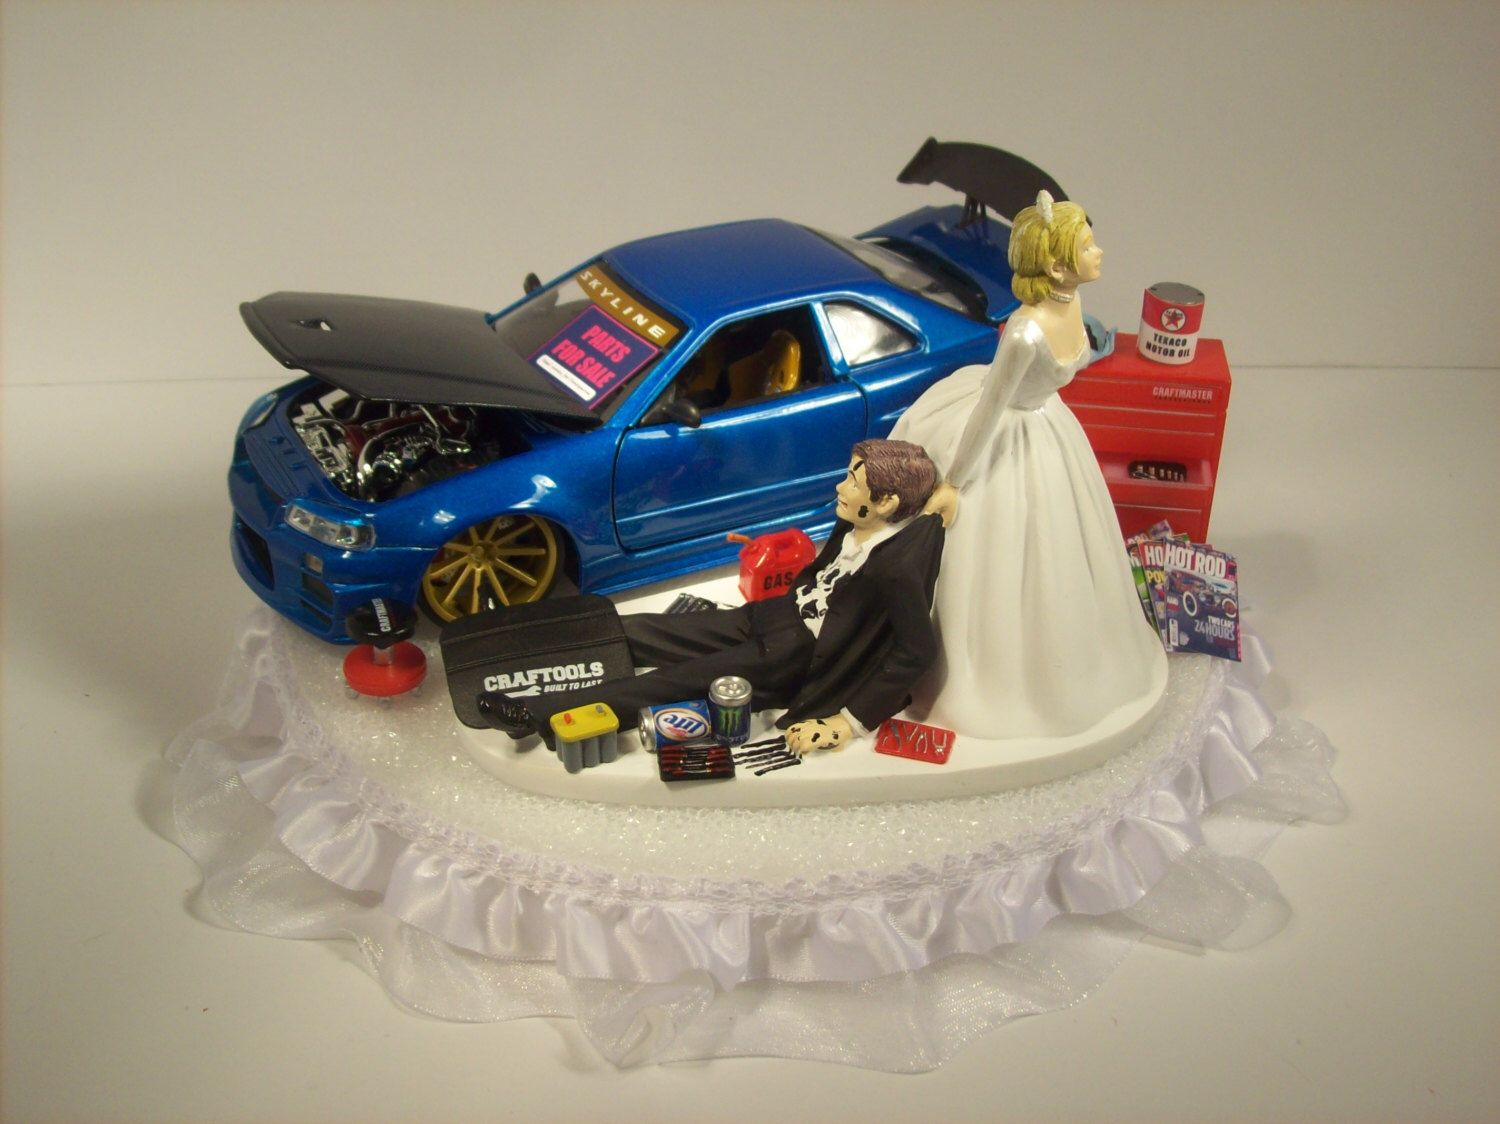 Mechanic Birthday Cake Toppers